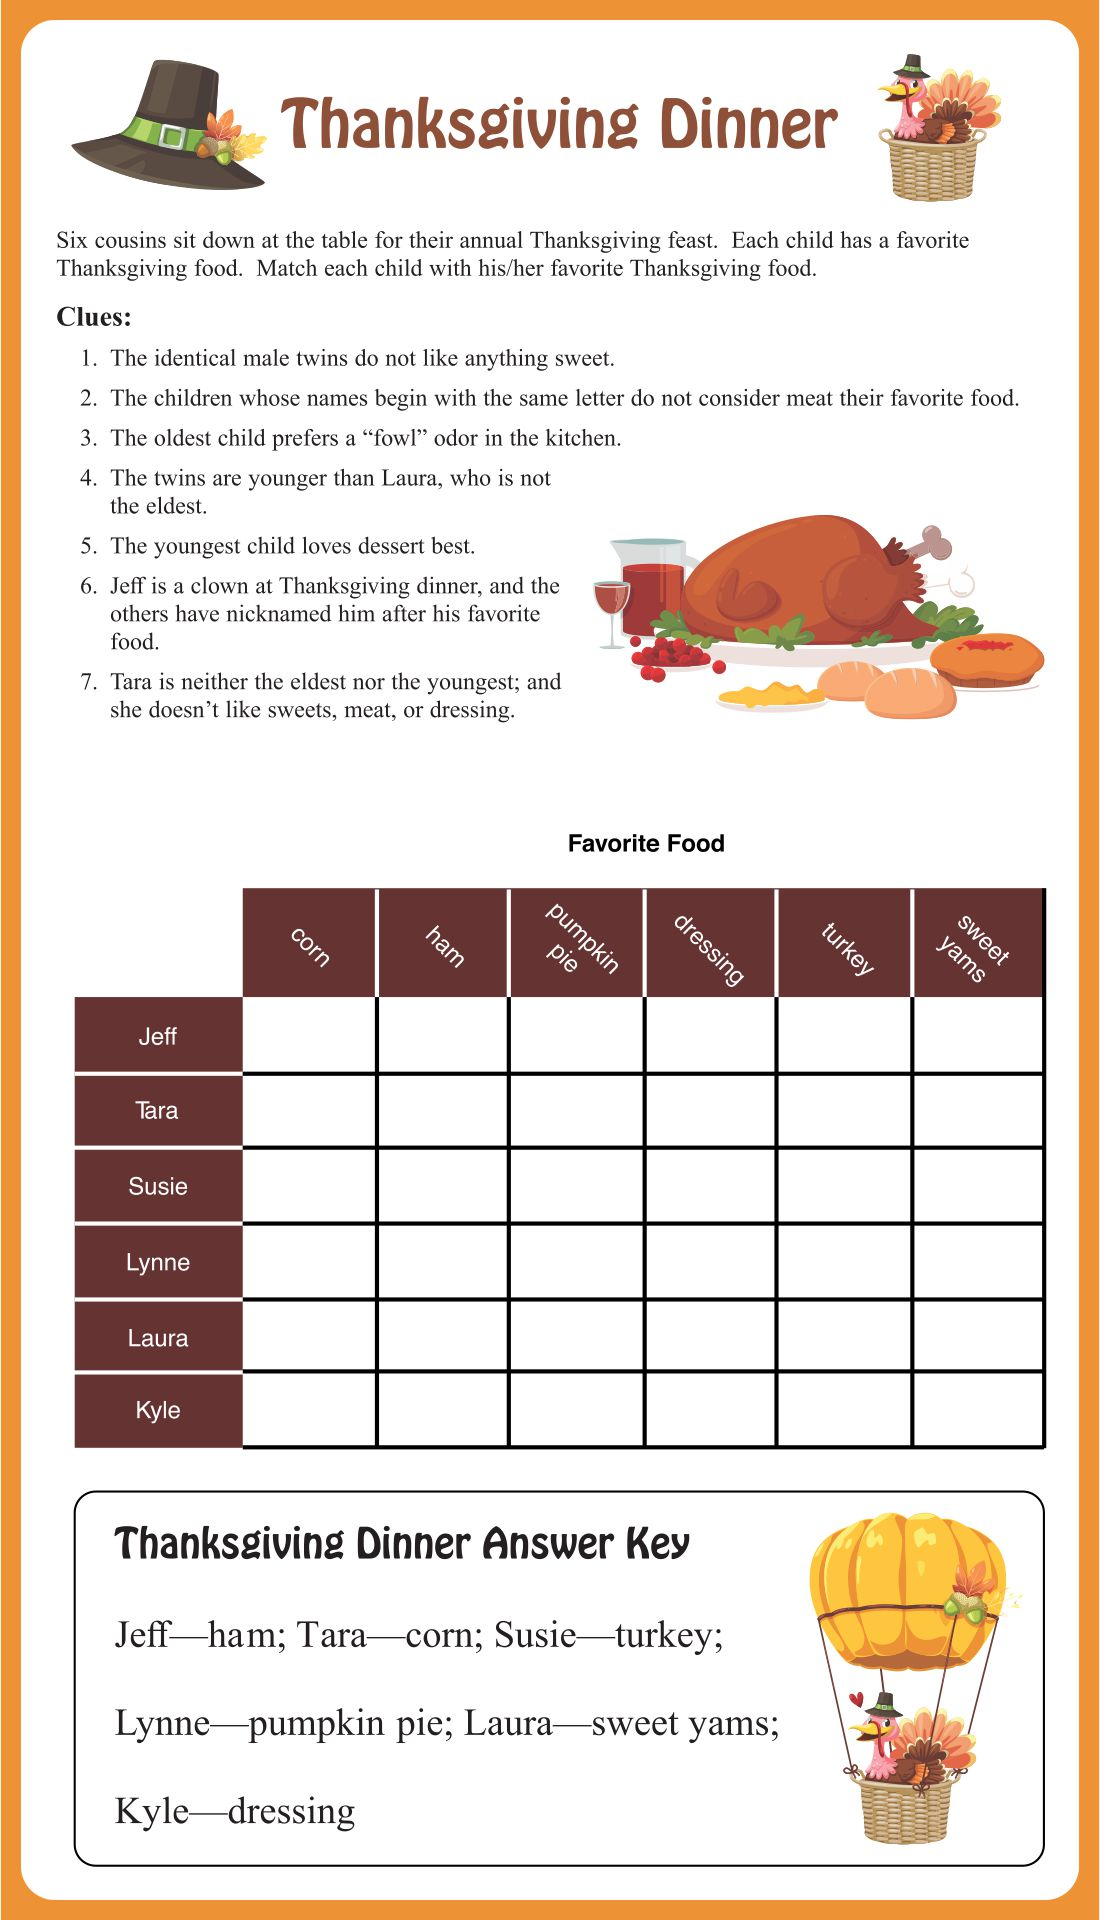 Thanksgiving Dinner Holiday Brain Teasers Answers